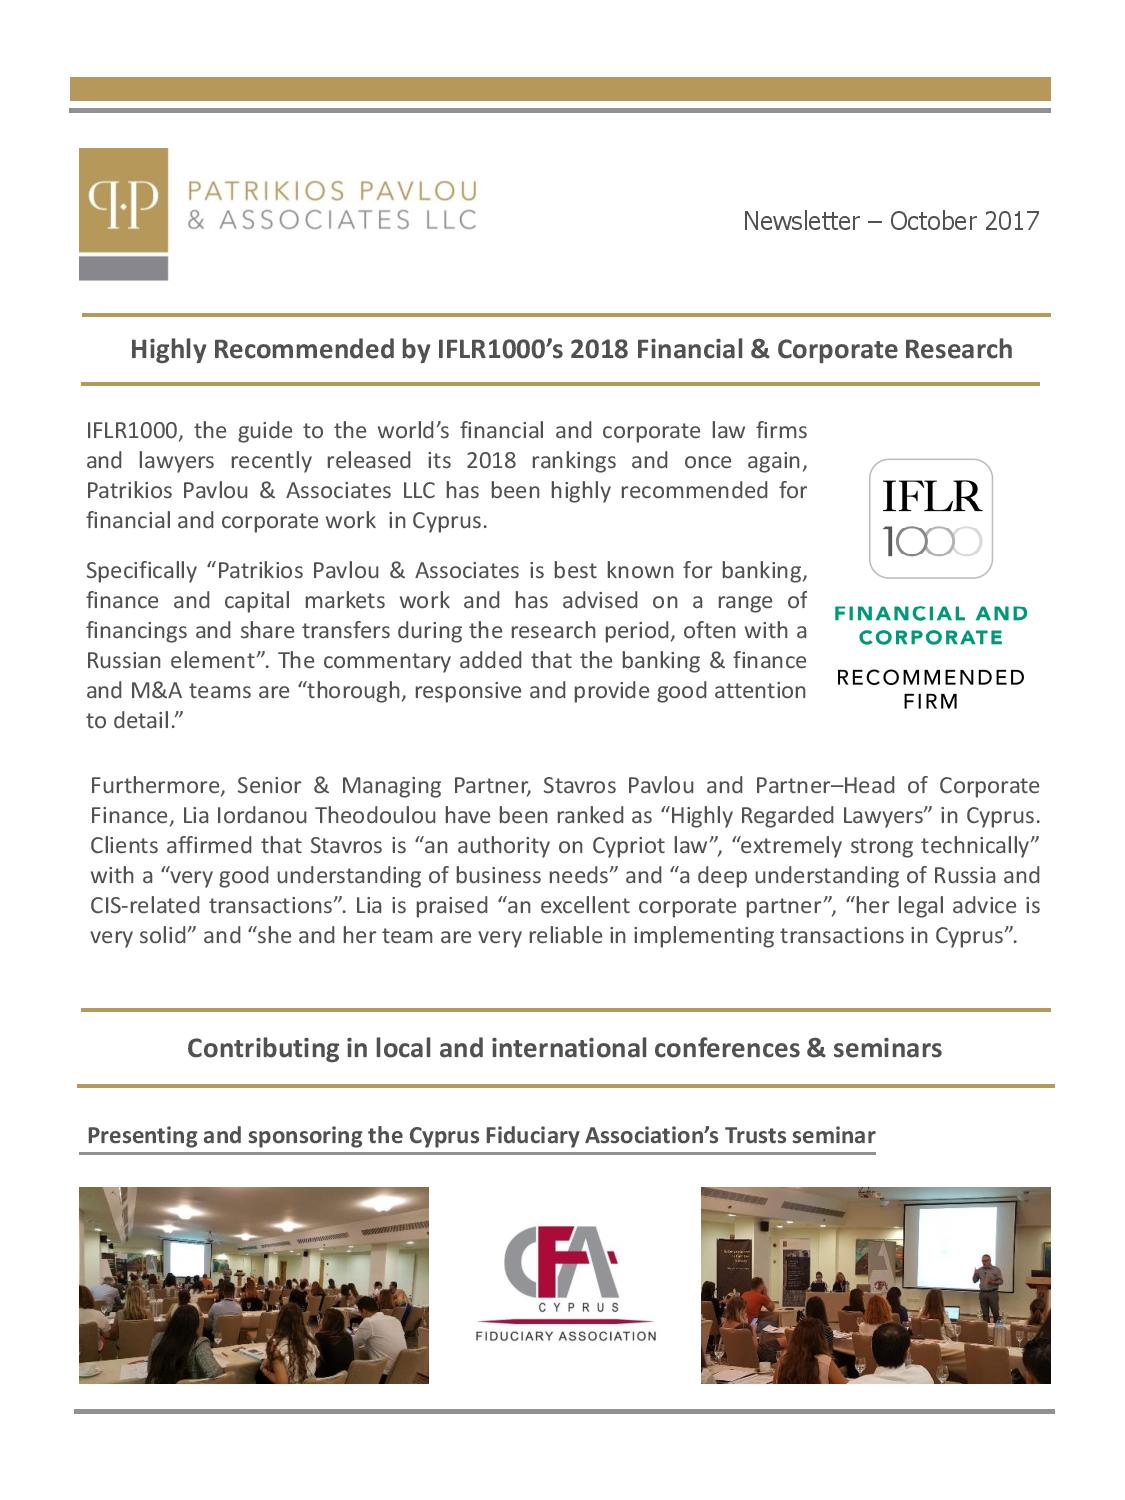 Patrikios Pavlou & Associates LLC October 2017 Newsletter